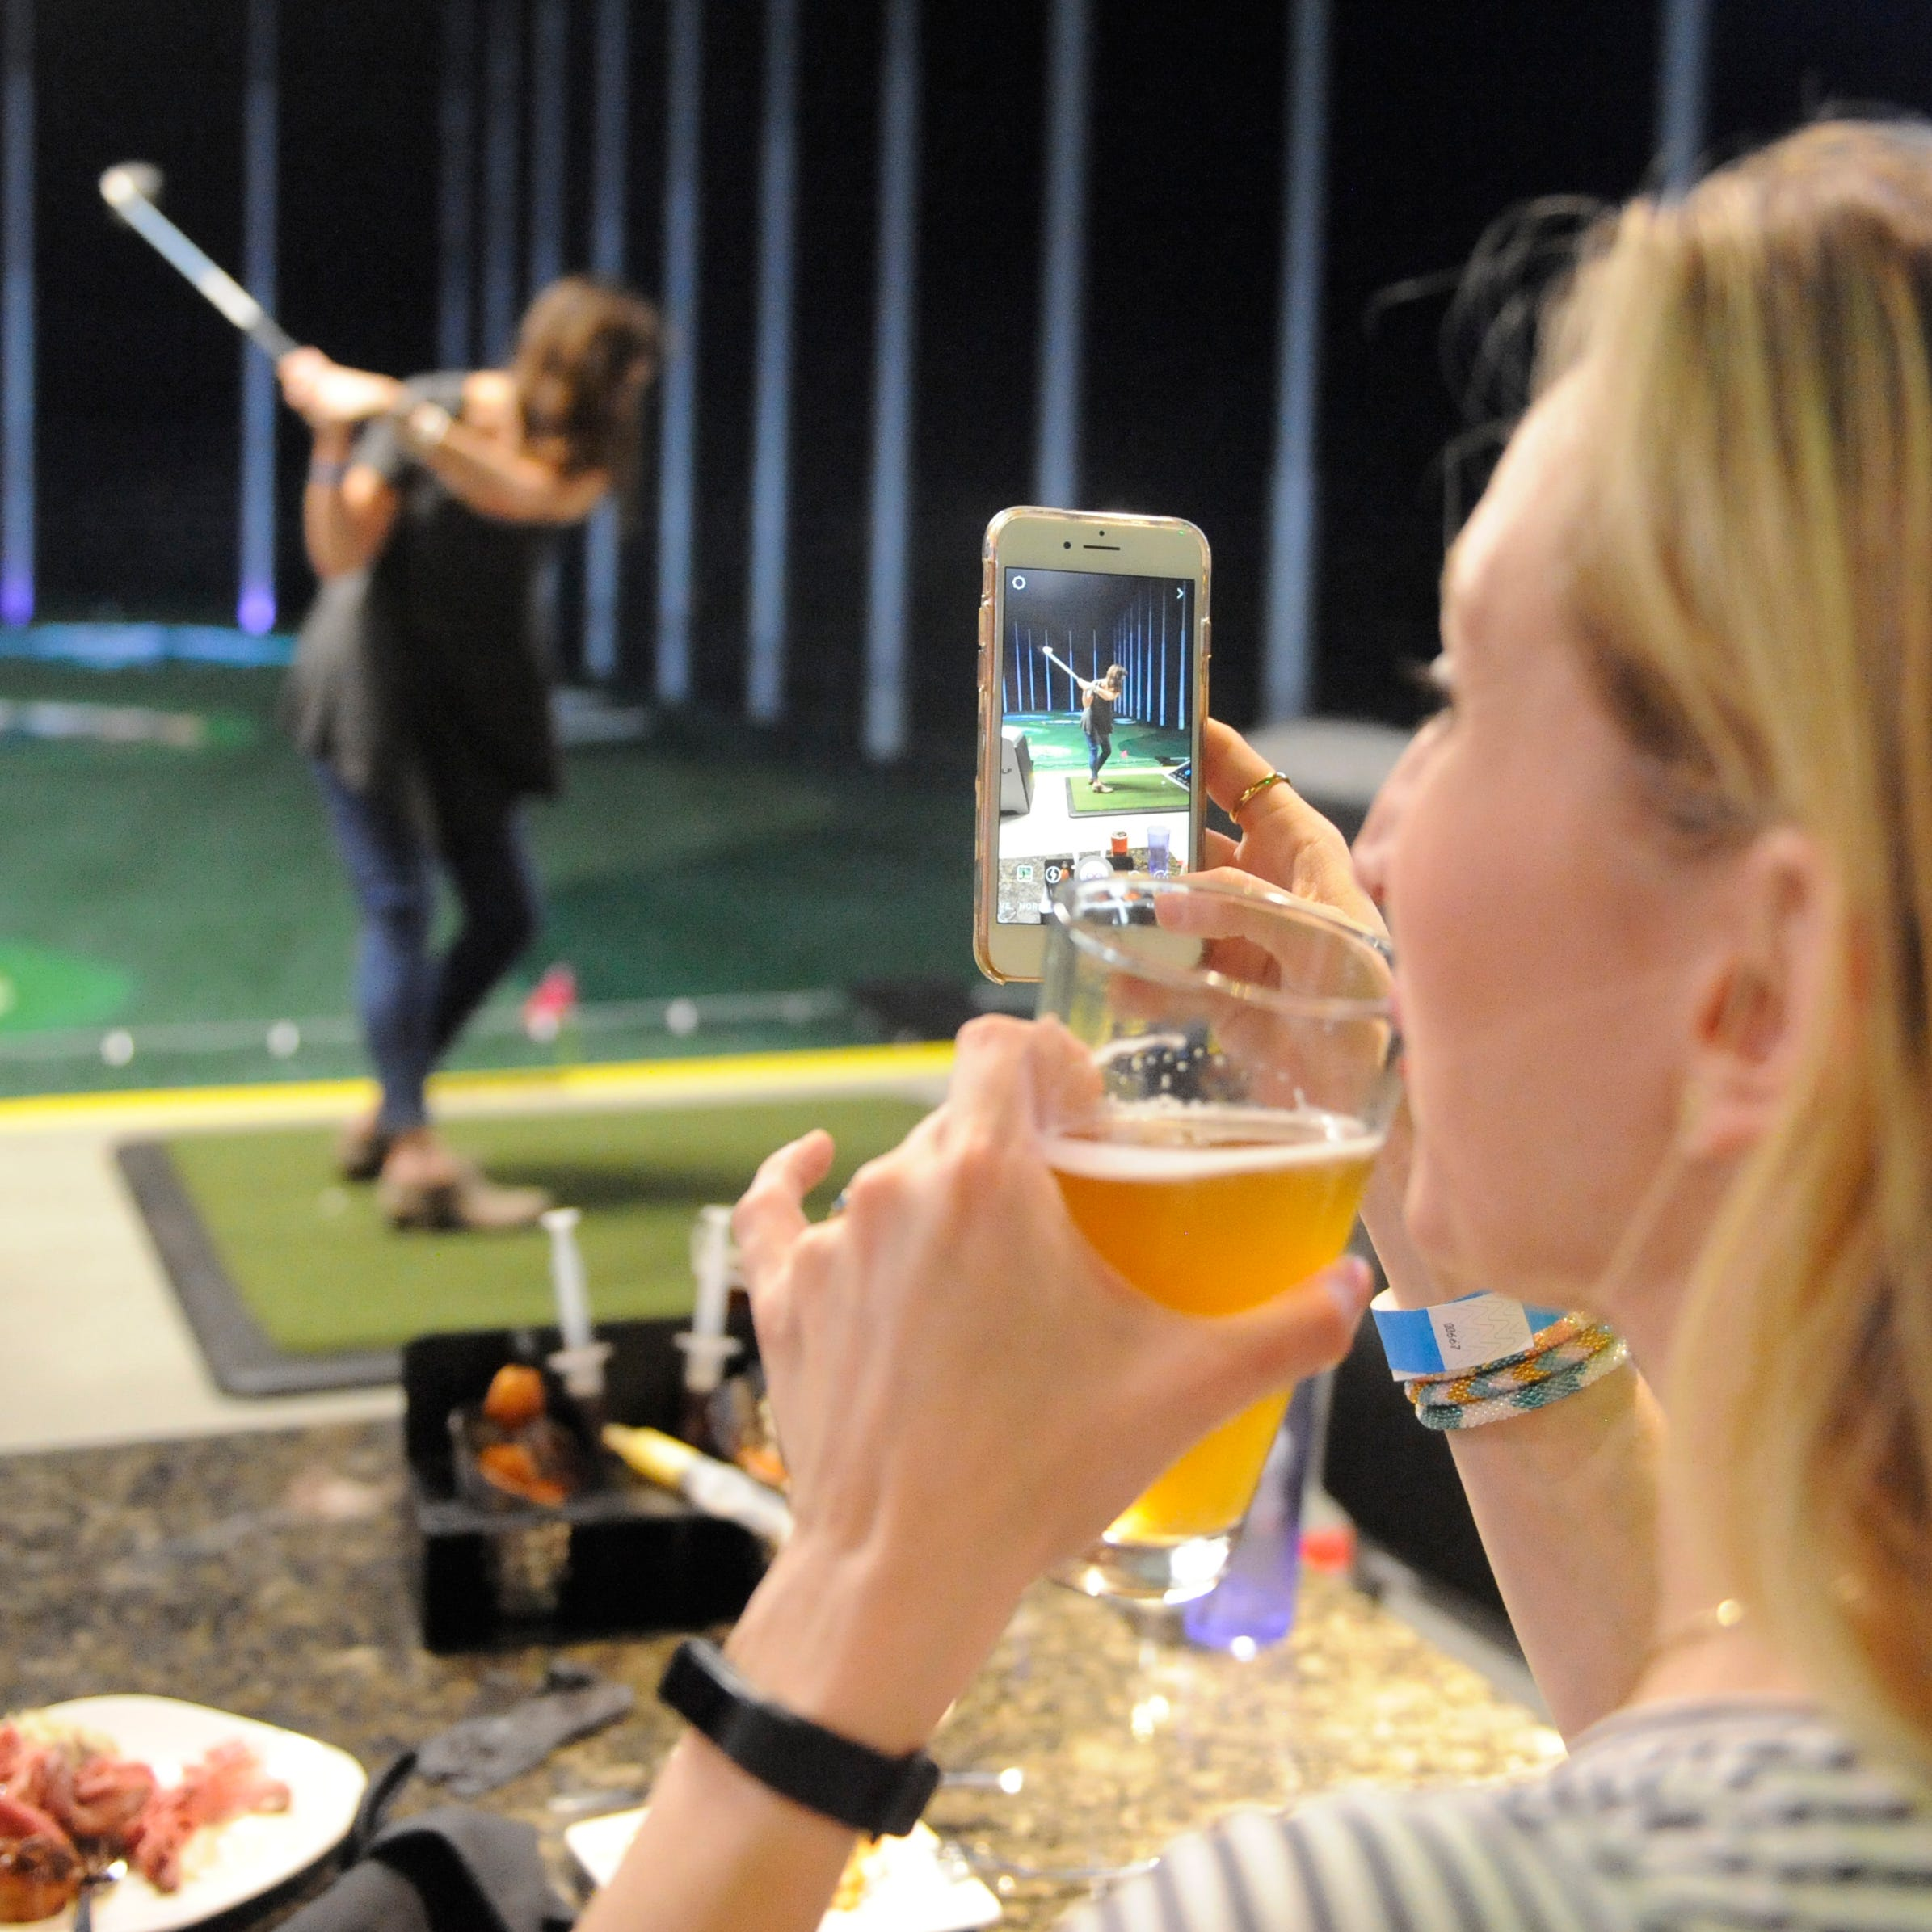 Topgolf Mount Laurel announces opening day for latest New Jersey facility